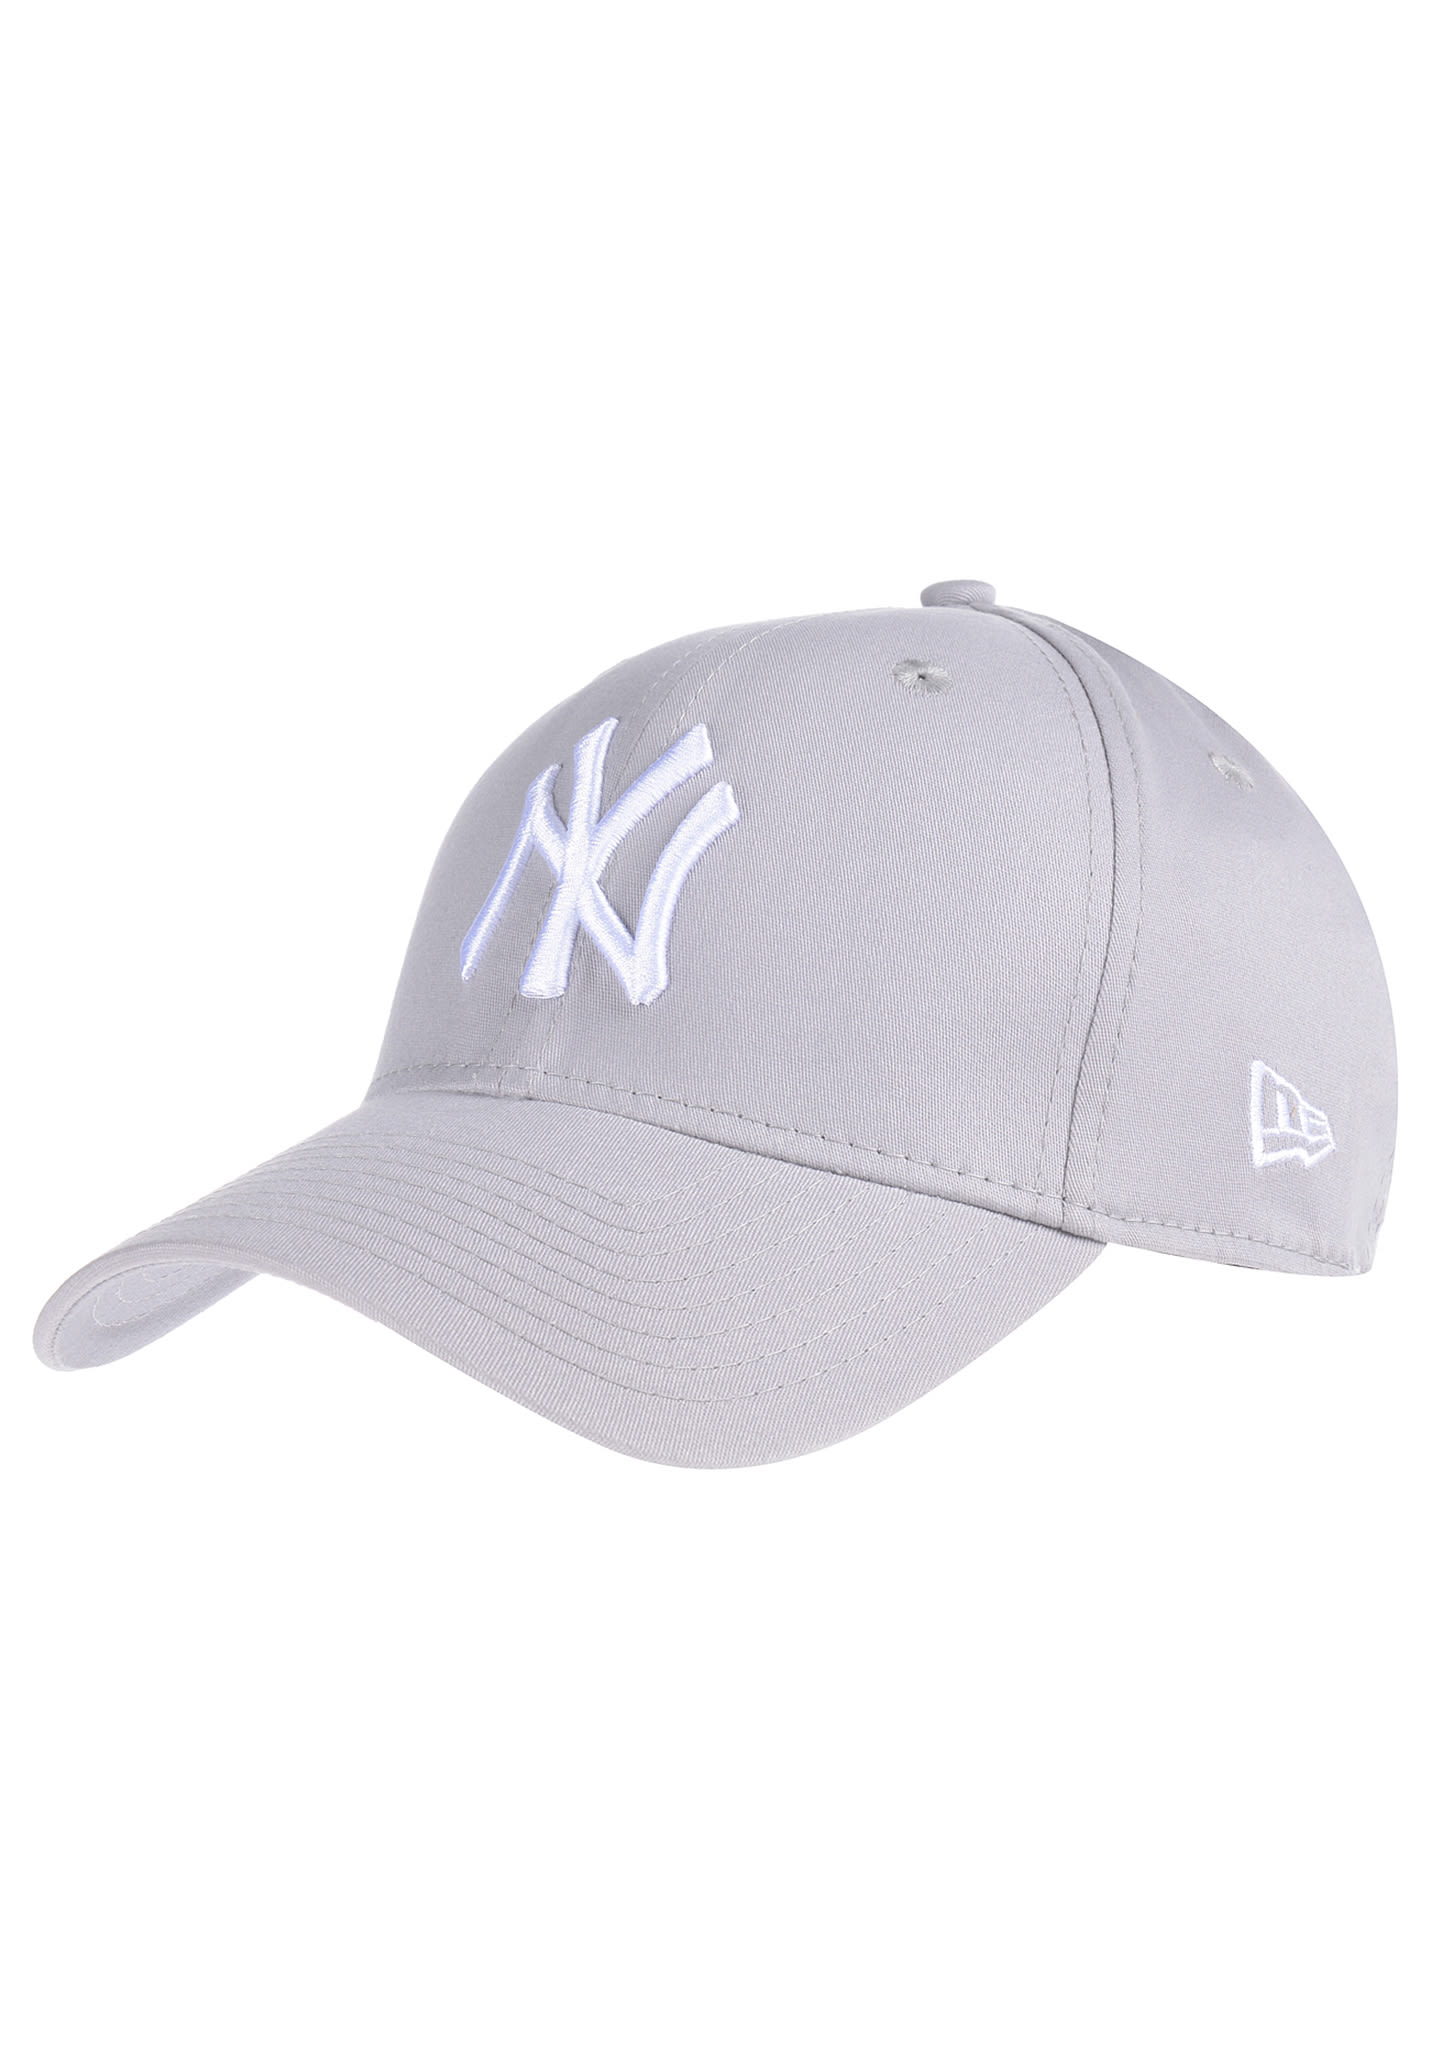 90a1f3f45a36b NEW Era 39Thirty New York Yankees - Gorra de ajuste flexible - Gris -  Planet Sports